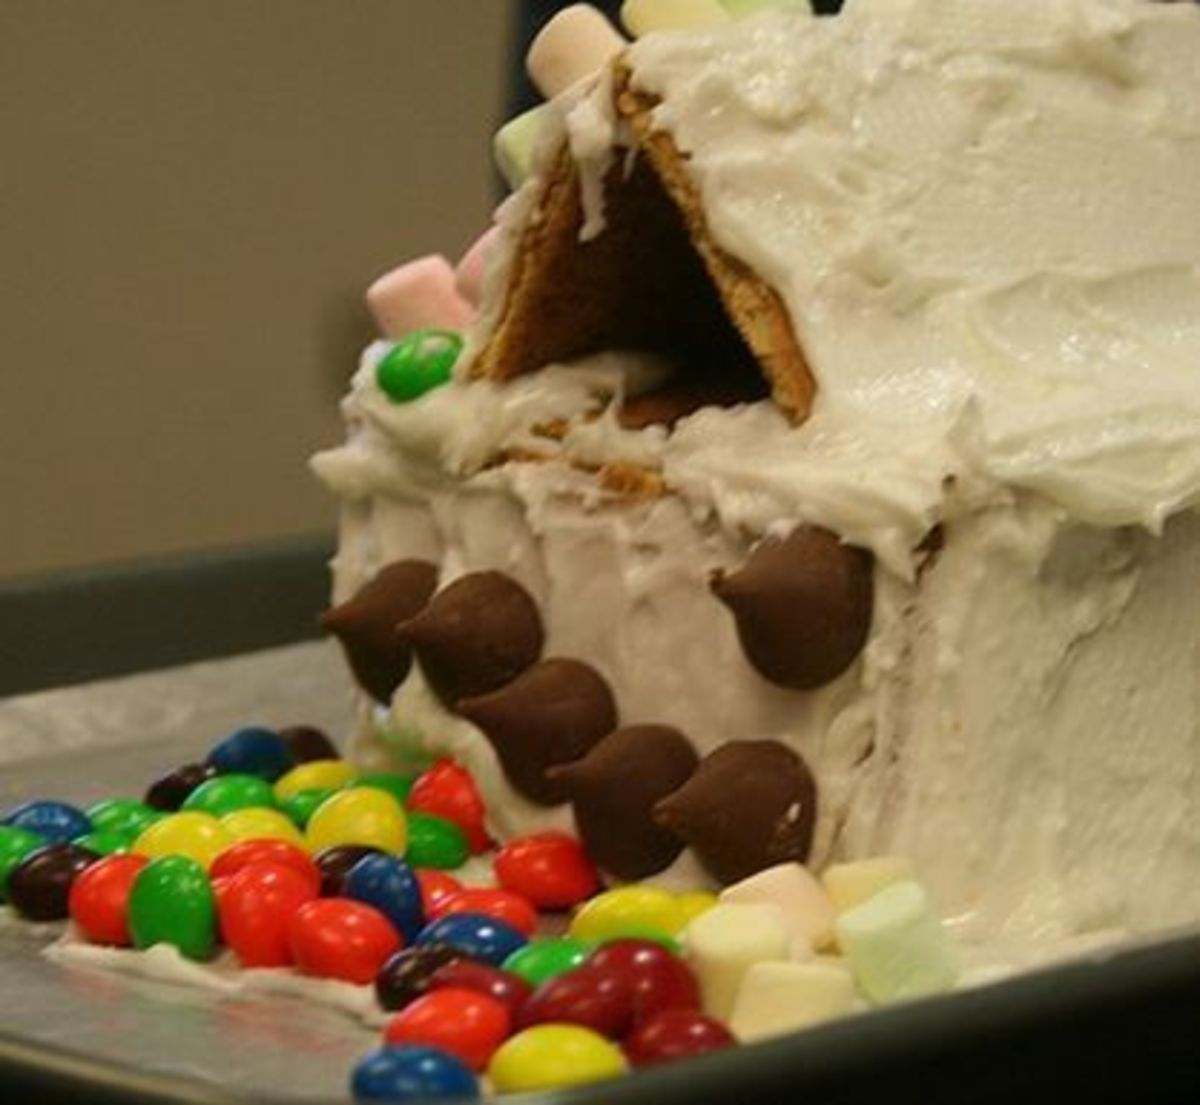 Gingerbread house candy craft made by child